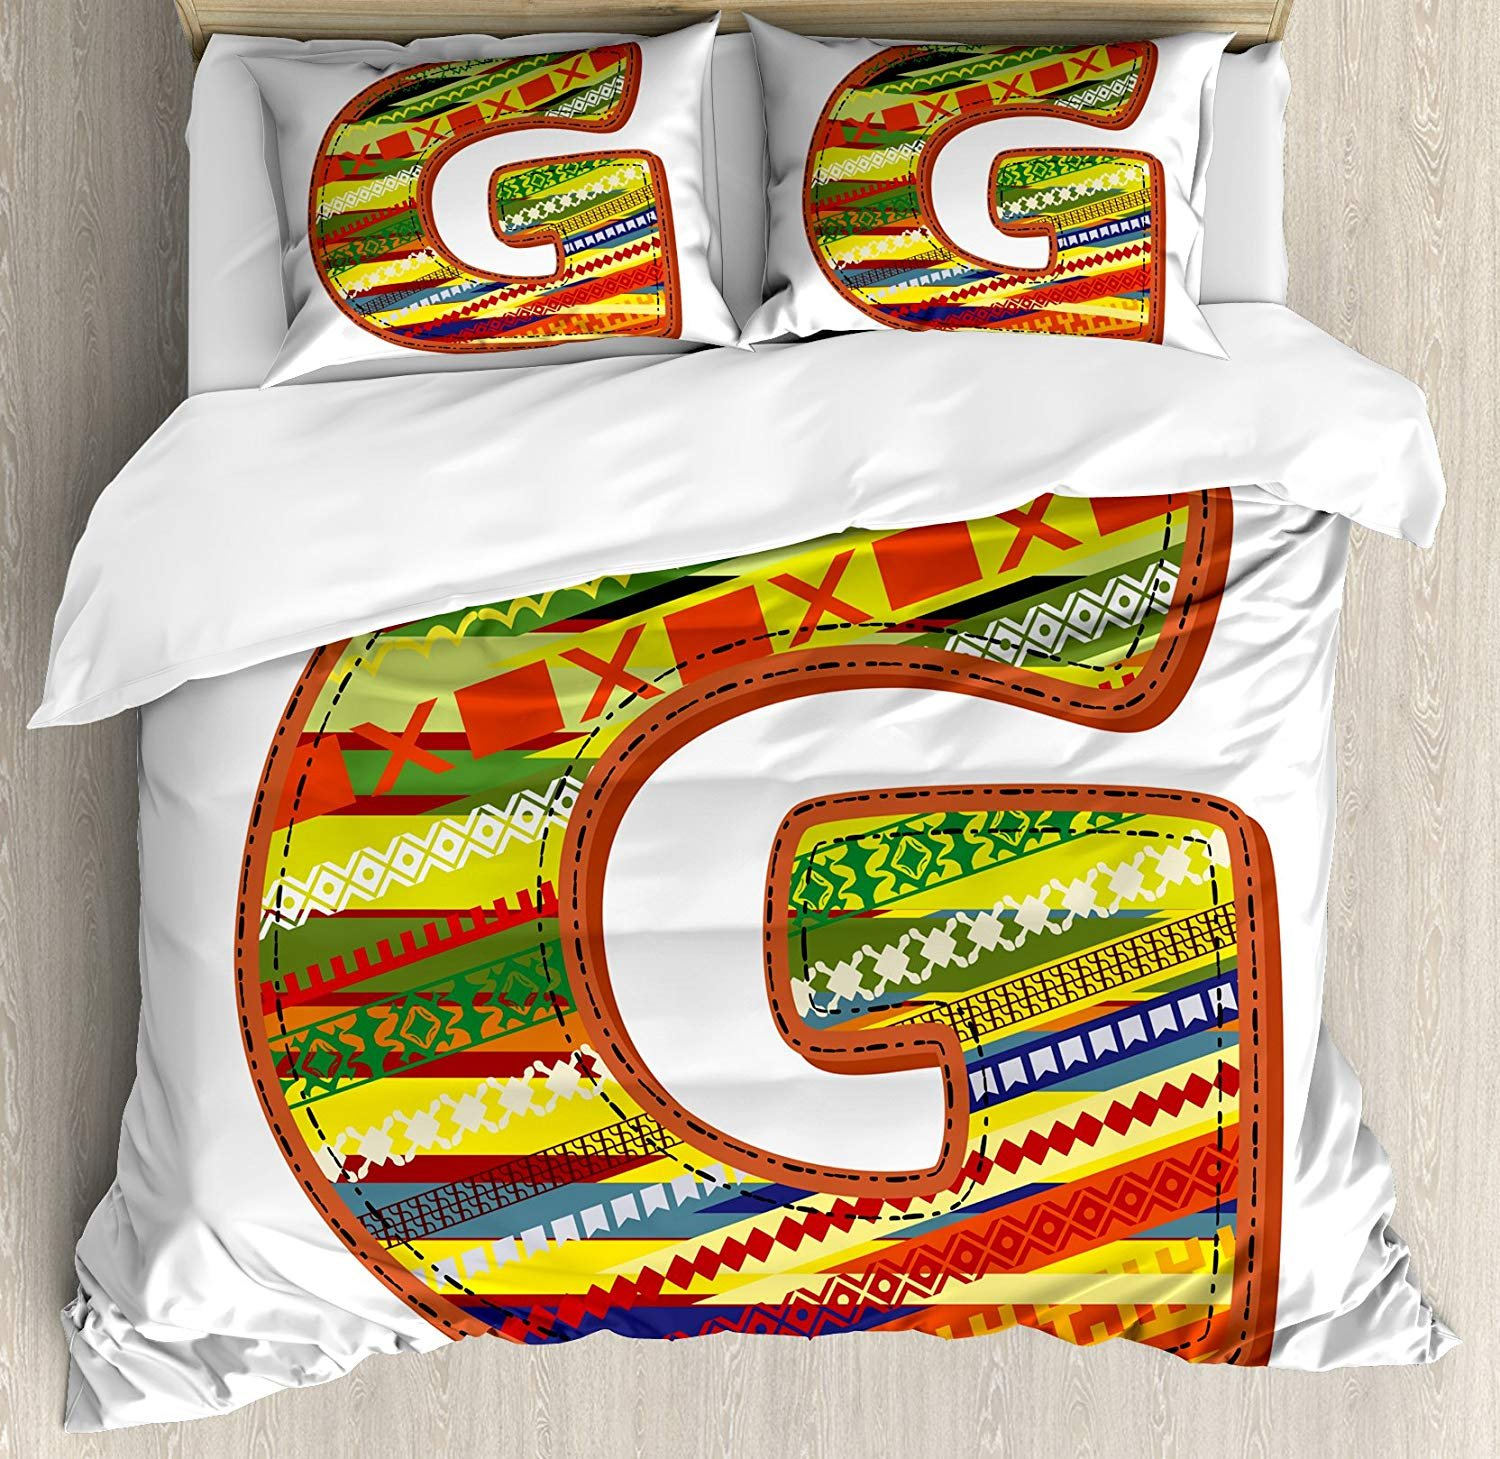 WomenFoucs Letter G Twin Bedding Comforter Sets All-Season 4pc Duvet Cover Set Quilt Bedspread for Adult/Kids/Teens, G Letter Character Language System Learning College Surname Red Calligraphy Design by WomenFoucs (Image #1)